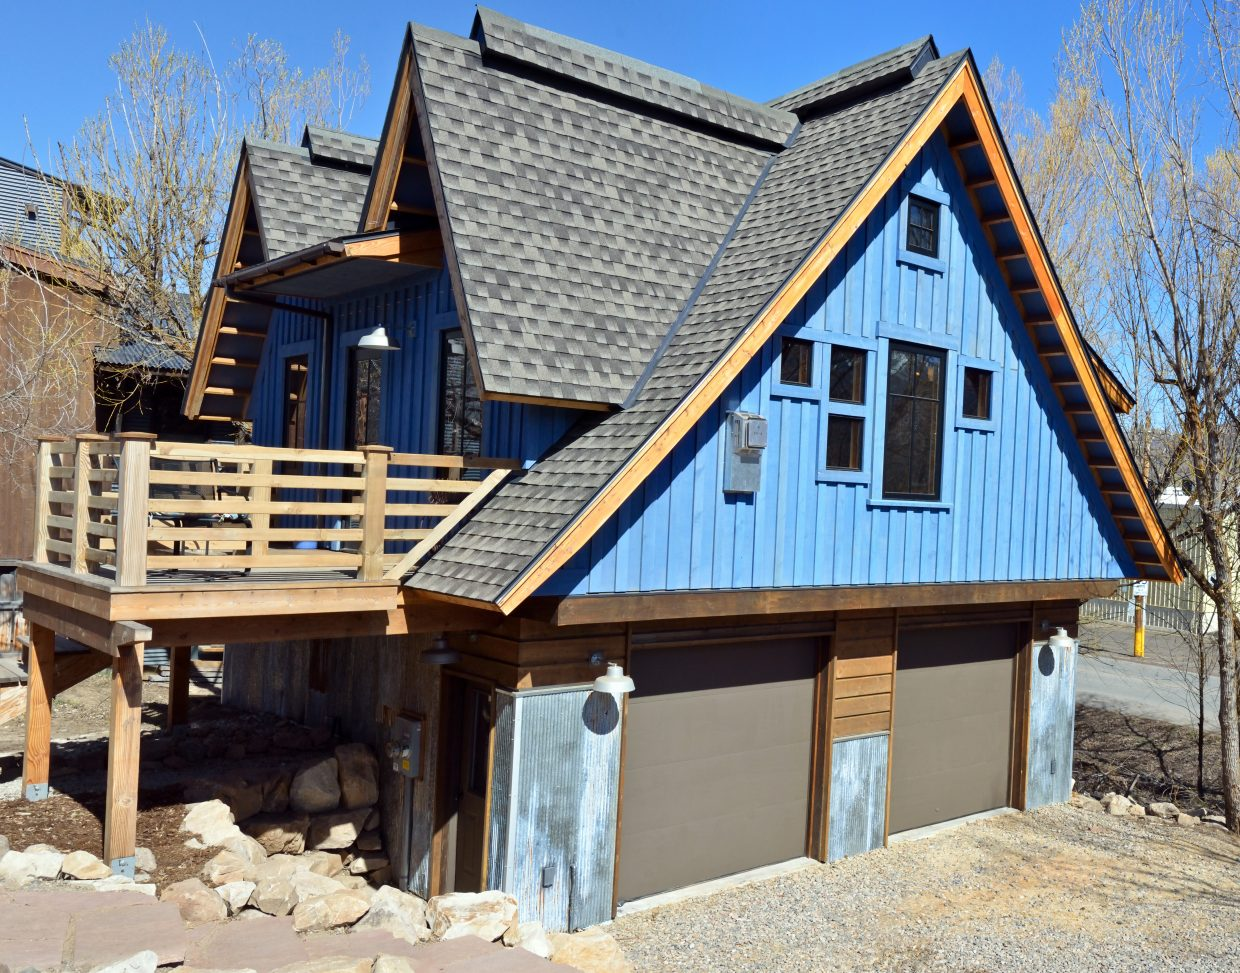 New Mountain Builders owner Scott Kemp built this 650-square-foot apartment and the garage it sits on in the Fairview neighborhood of Steamboat Springs, and lives inside with his wife, two young sons and a labrador retriever.